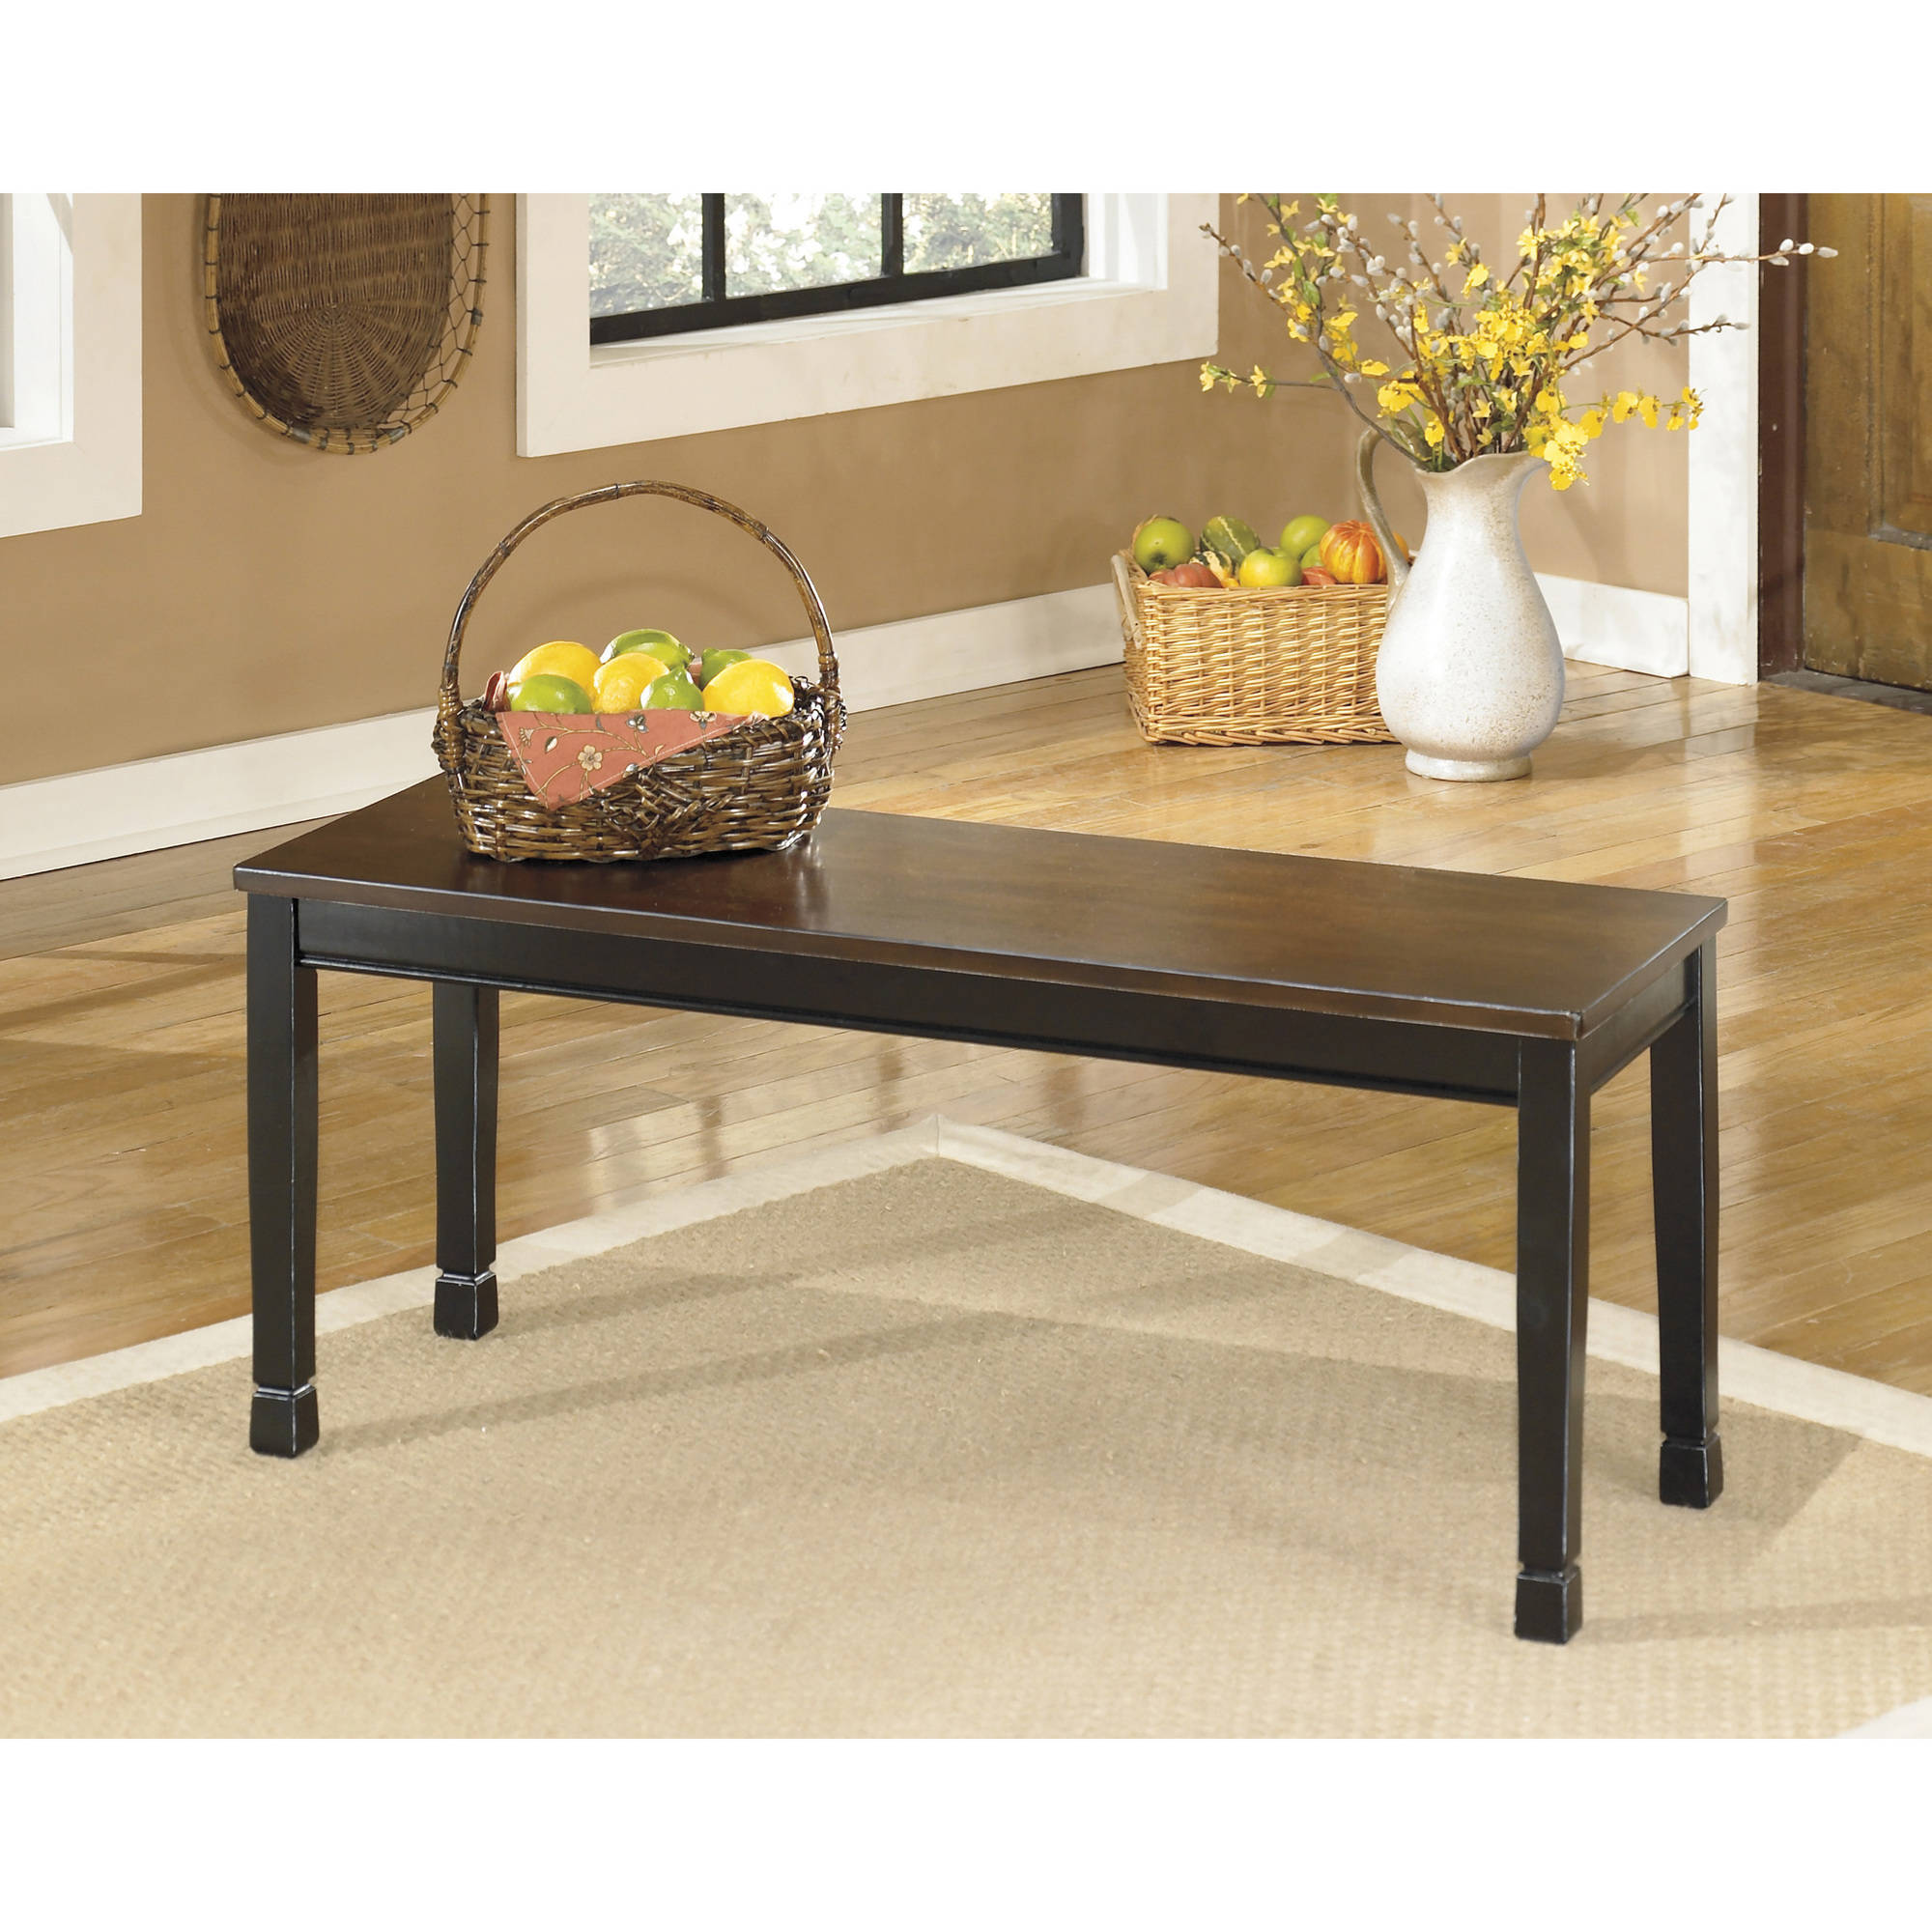 Ashley Owingsville Black and Brown Large Dining Room Bench D580-00 by Ashley Furniture